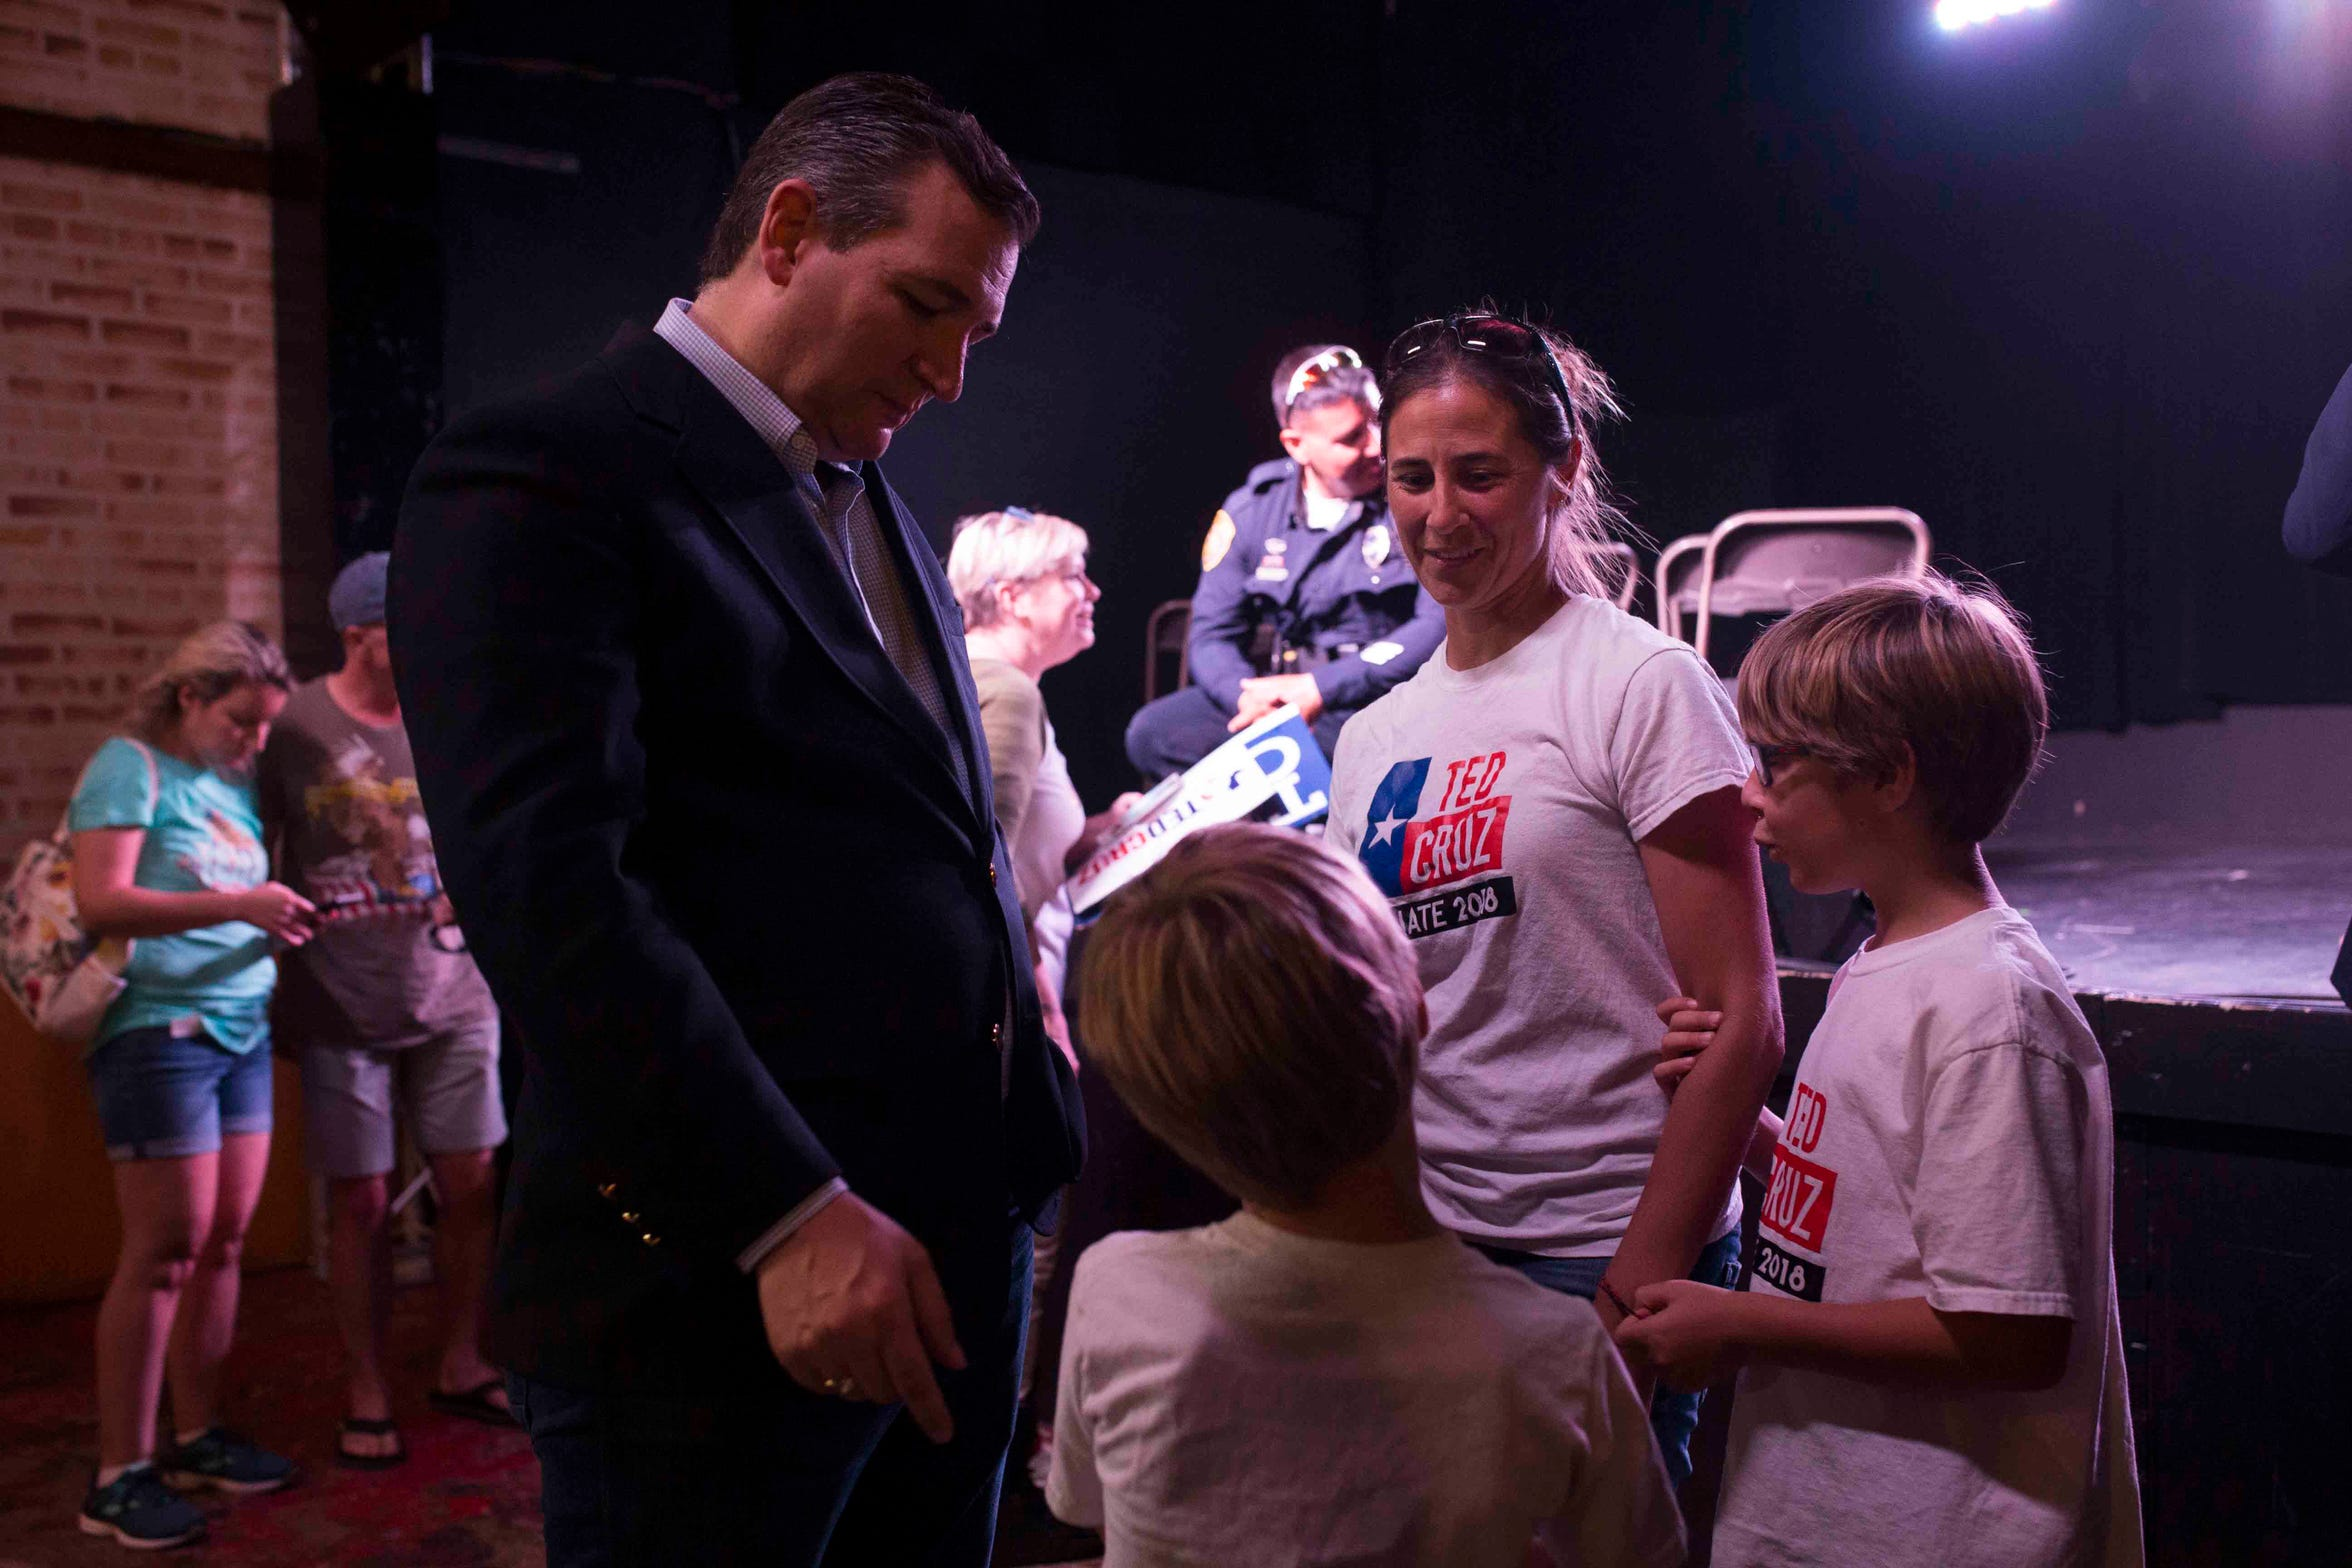 Jessica Tucker and her sons Gaven Tucker, 7 (left), and Walker Tucker, 9, speak with U.S. Sen. Ted Cruz following a  campaign event on Saturday, August 16, 2018, at House of Rock in Corpus Christi.